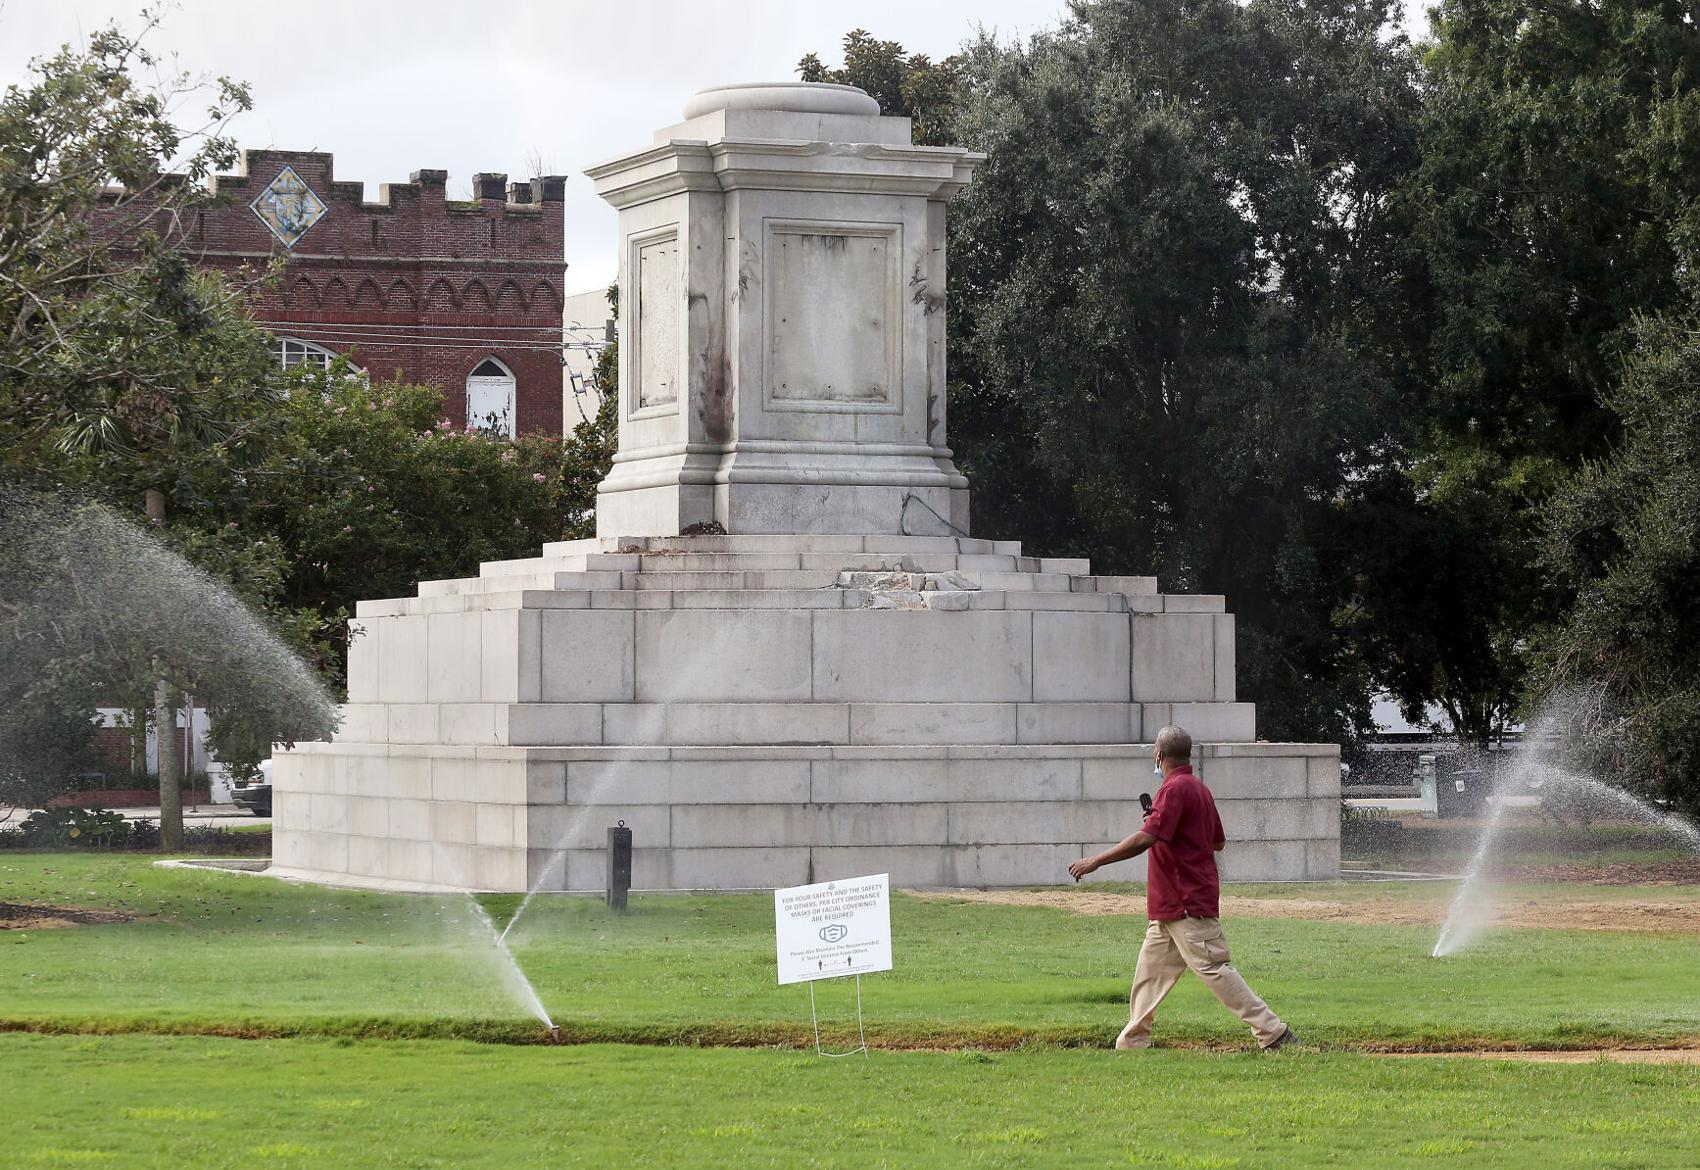 POST AND COURIER – Charleston hires firm to remove base of former John C. Calhoun monument for $131,000